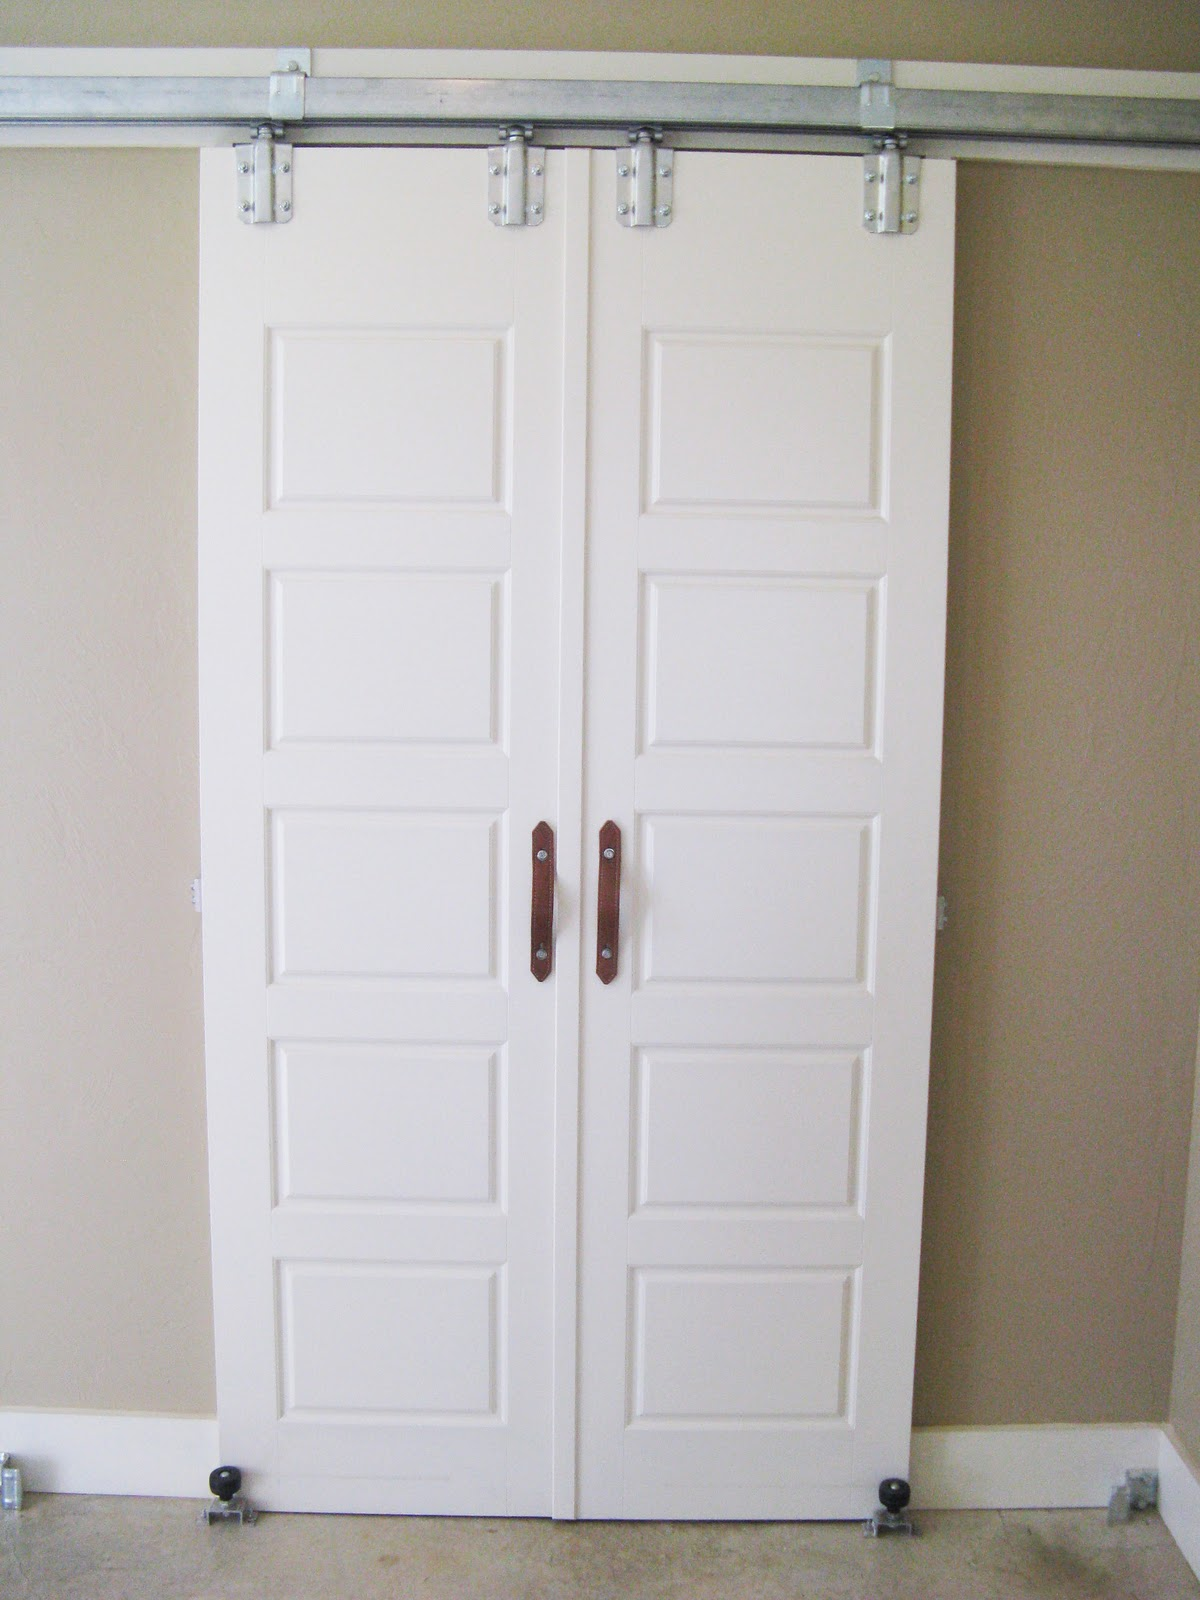 10 Barn Door Designs For Any Style Home - Page 10 of 11 -